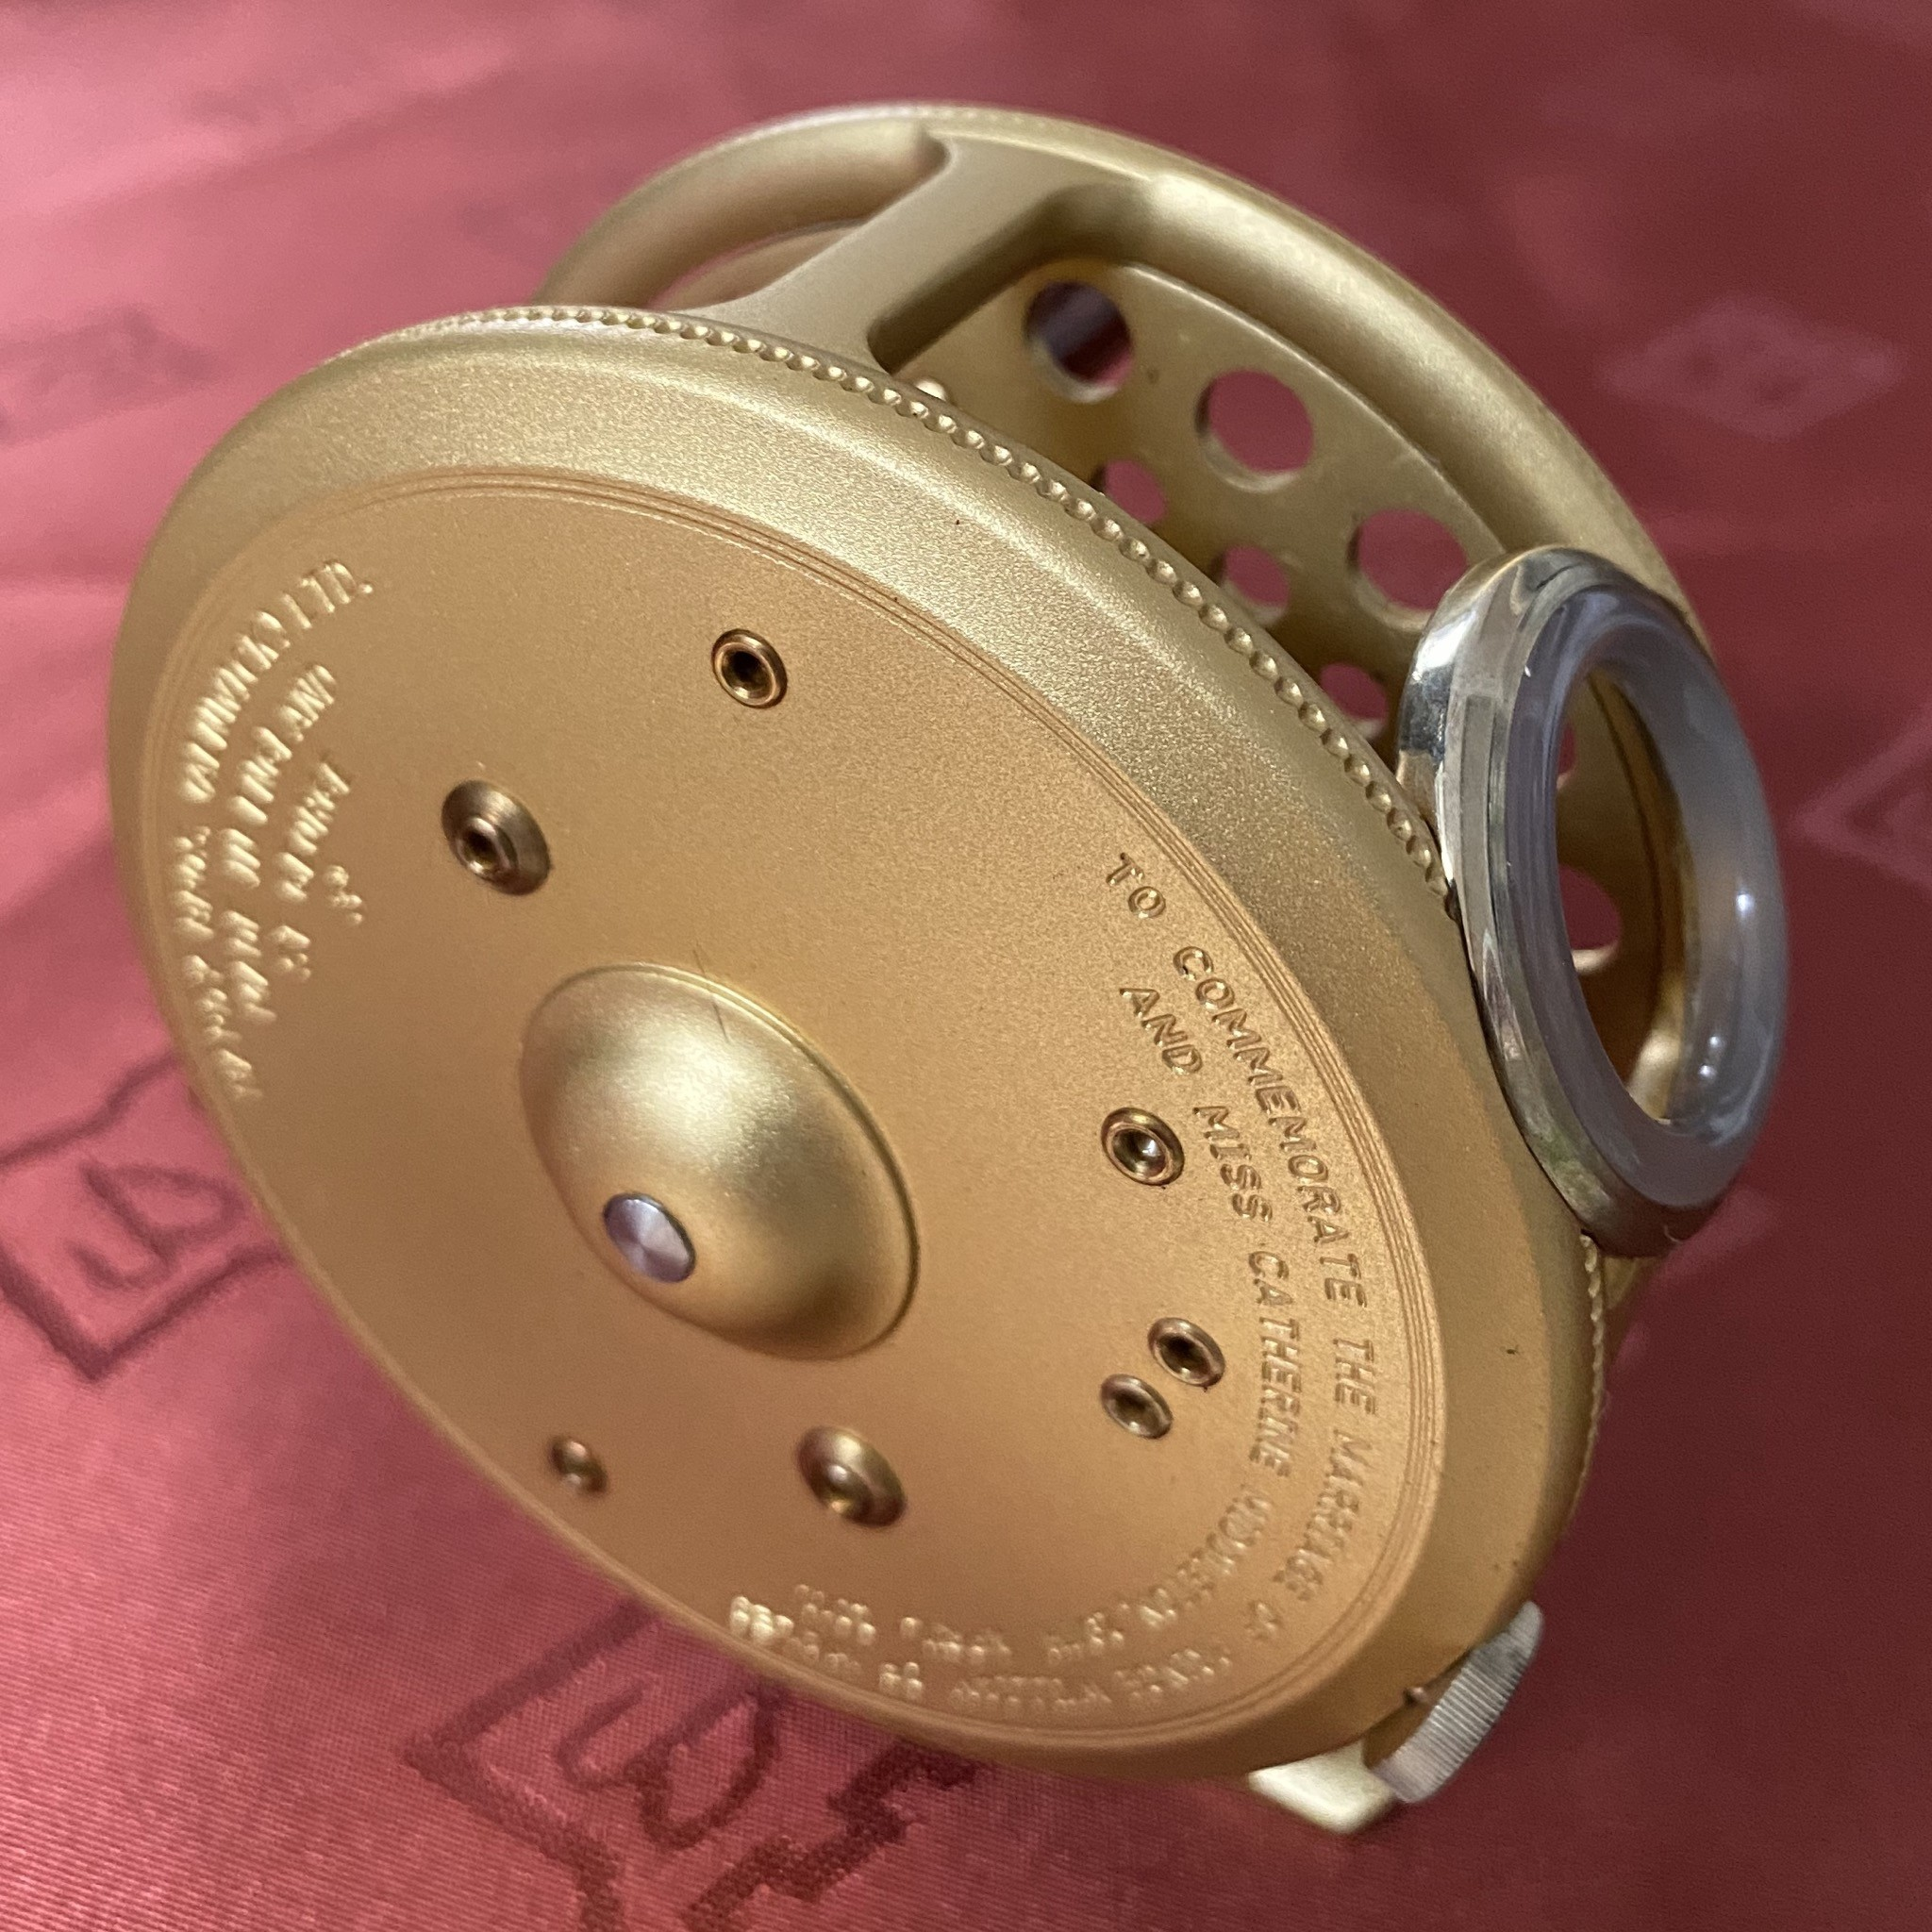 St. George The Royal Wedding Commemorative 3 inch Fly Reel MADE IN ENGLAND - LIMITED EDITION